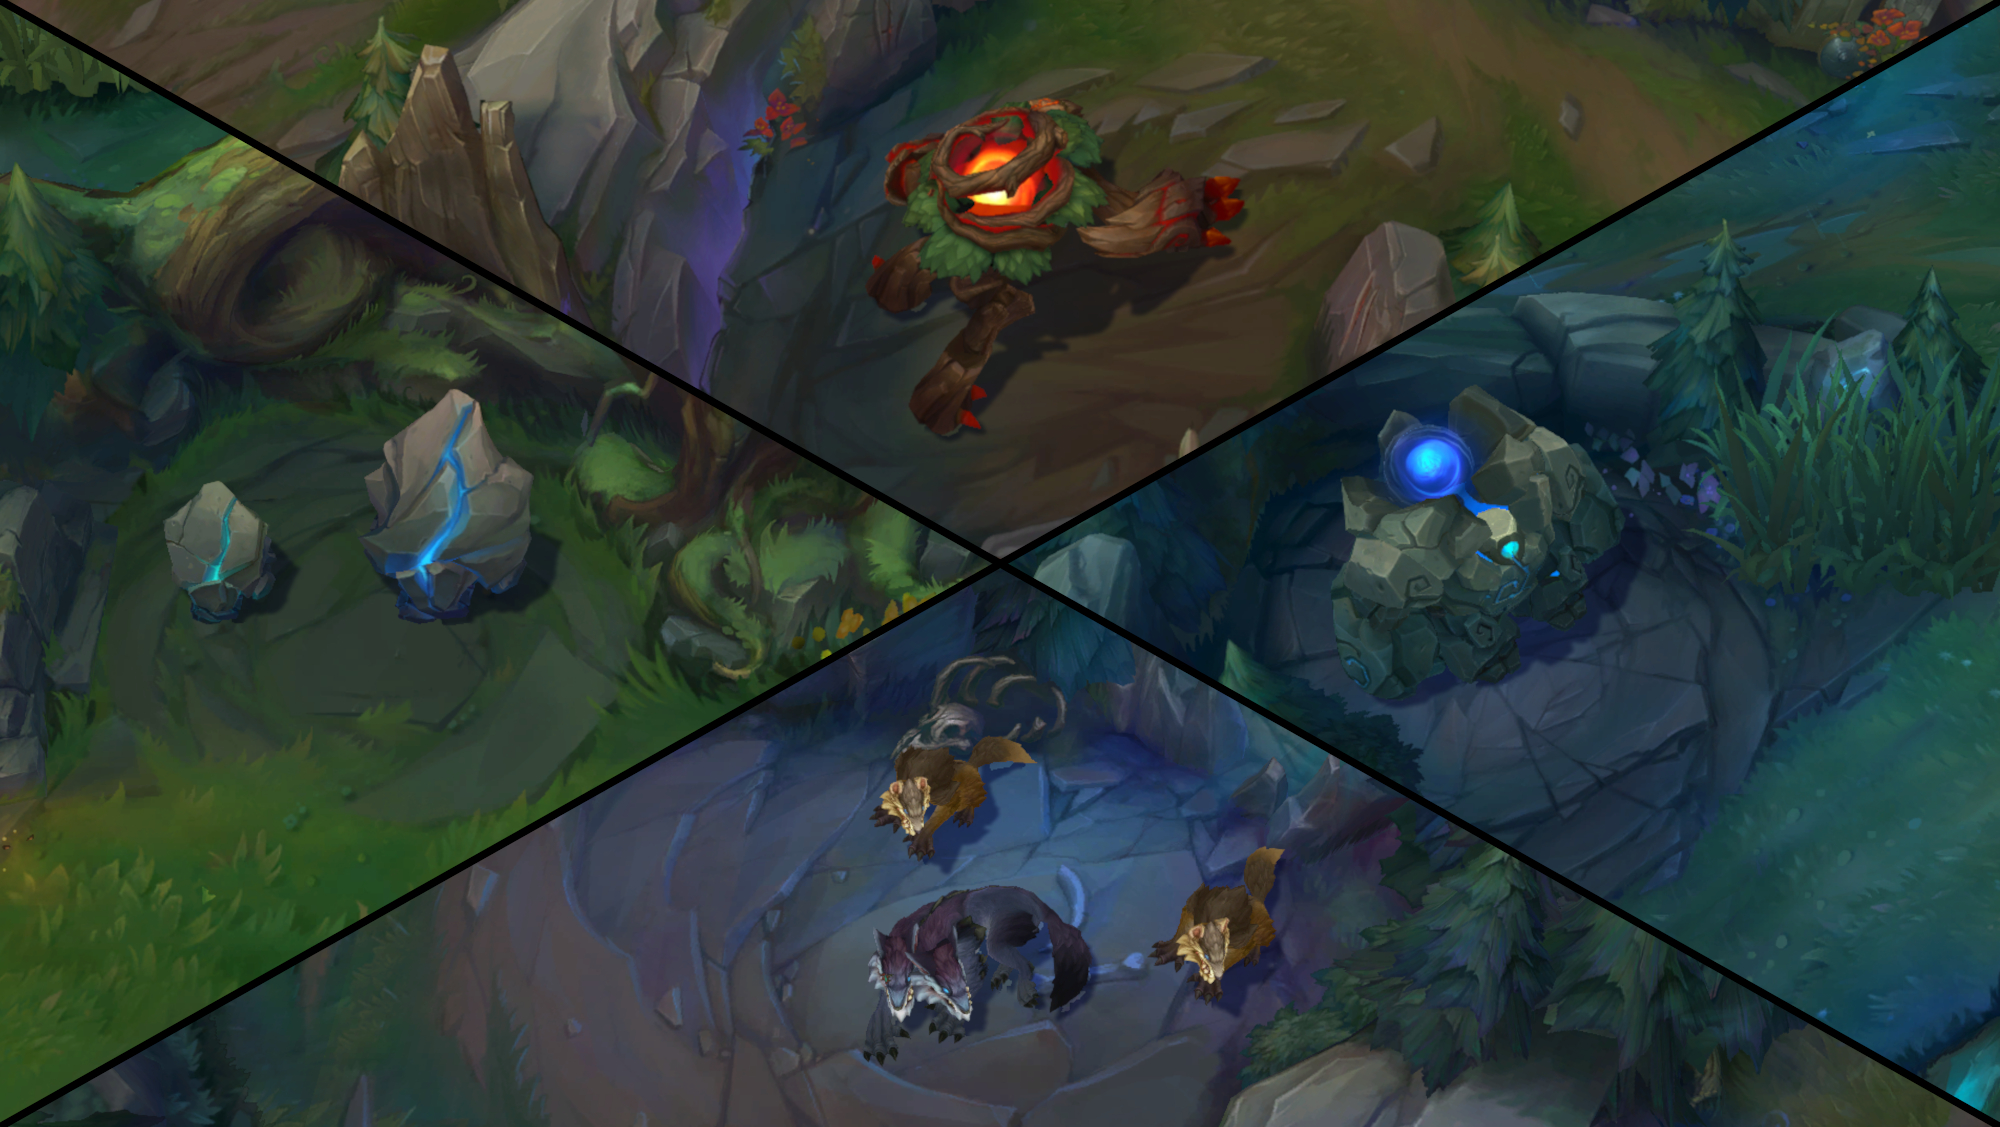 File:Monsters Summoners Rift.jpg